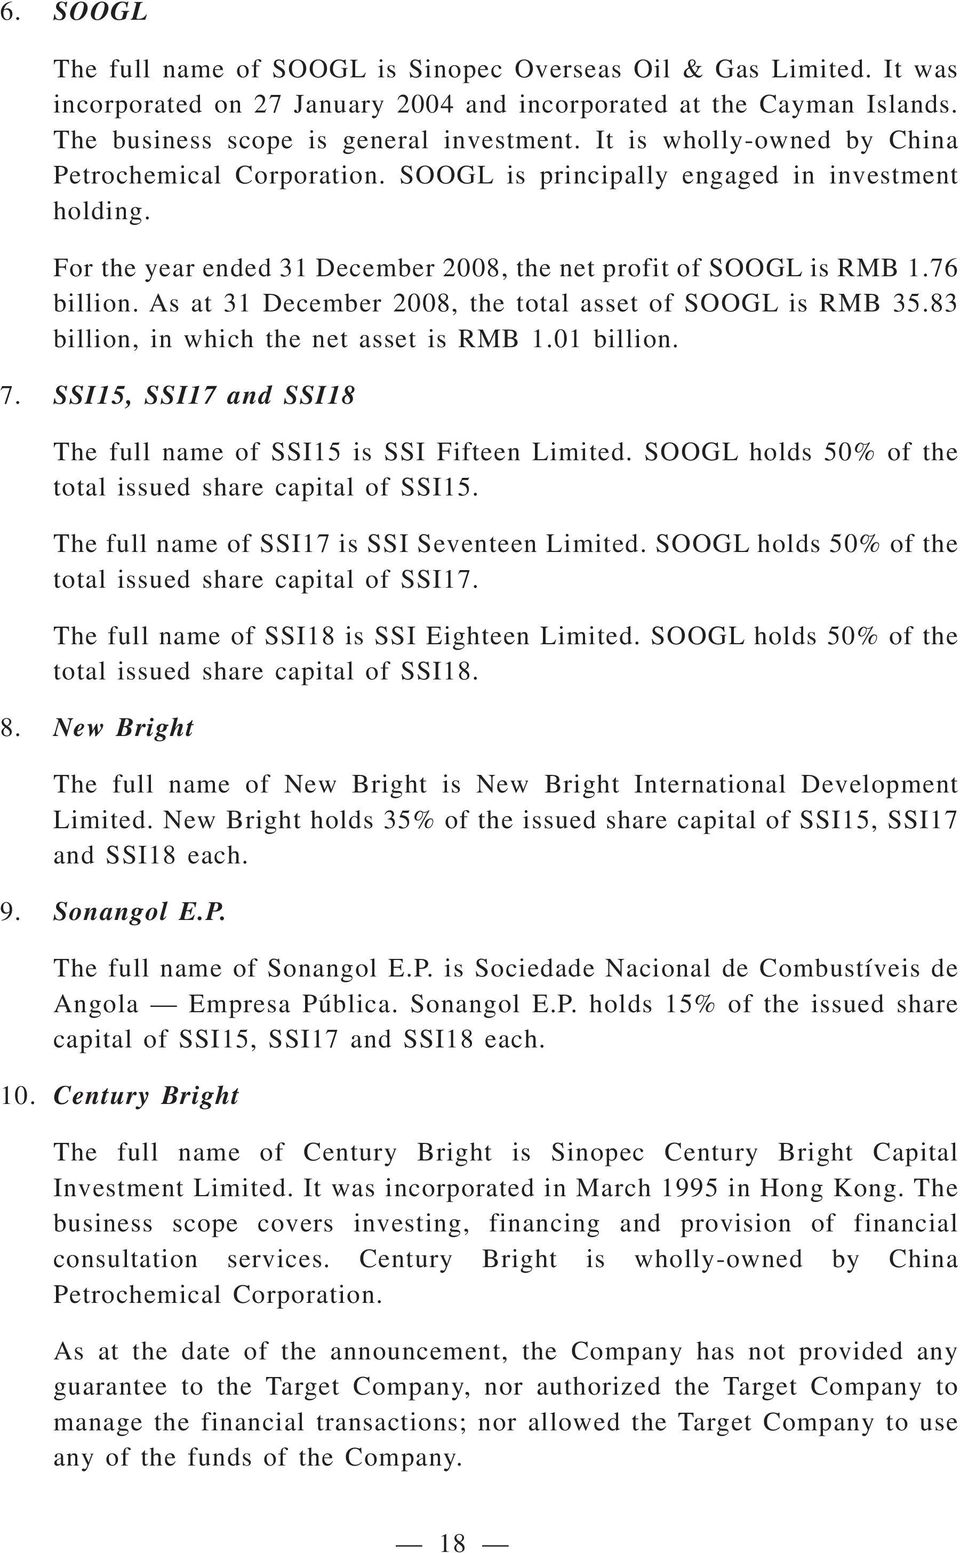 As at 31 December 2008, the total asset of SOOGL is RMB 35.83 billion, in which the net asset is RMB 1.01 billion. 7. SSI15, SSI17 and SSI18 The full name of SSI15 is SSI Fifteen Limited.